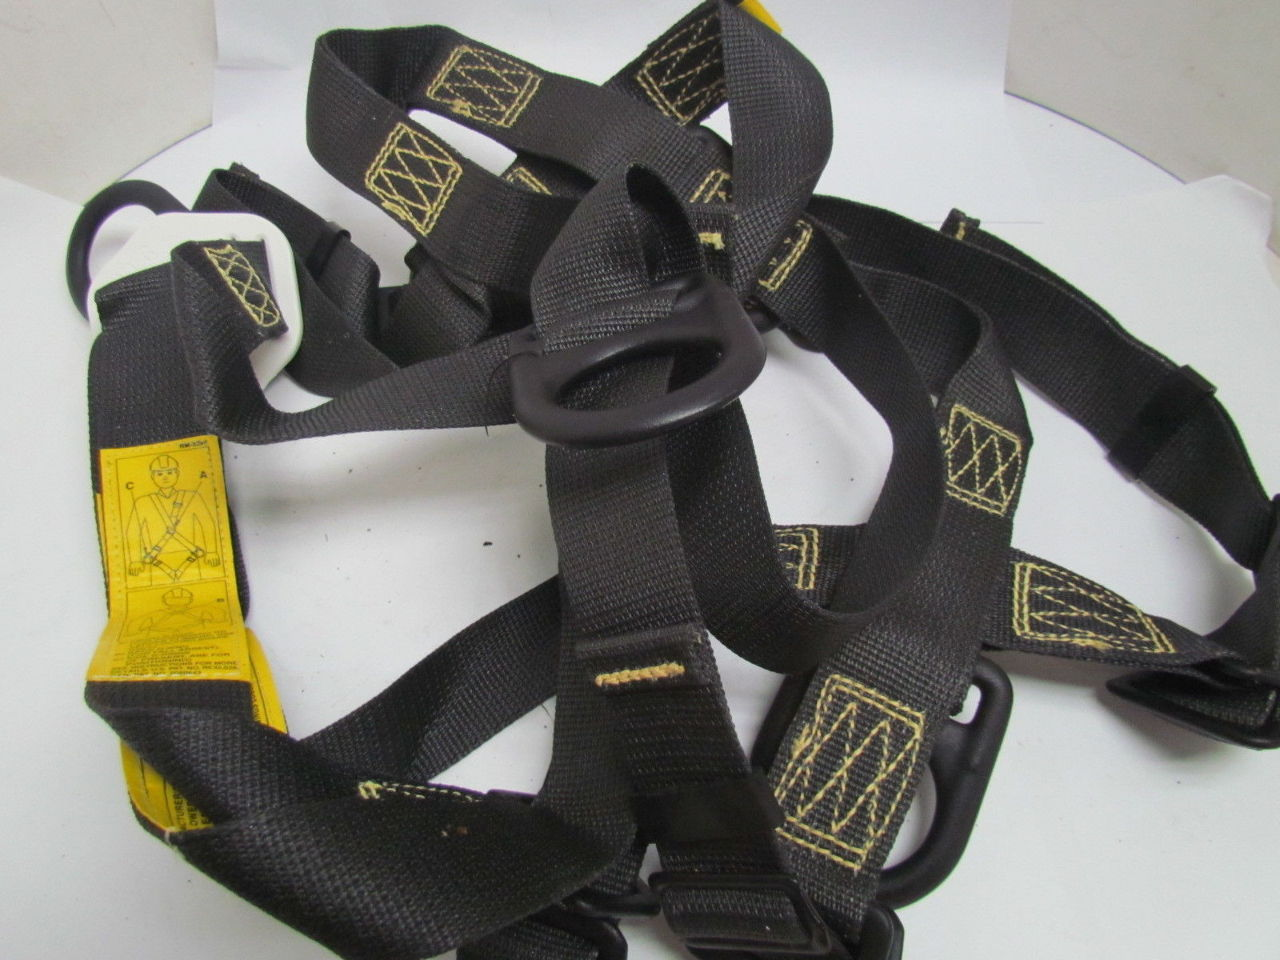 dbi sala l4544 5 fall protection safety harness size xl. Black Bedroom Furniture Sets. Home Design Ideas